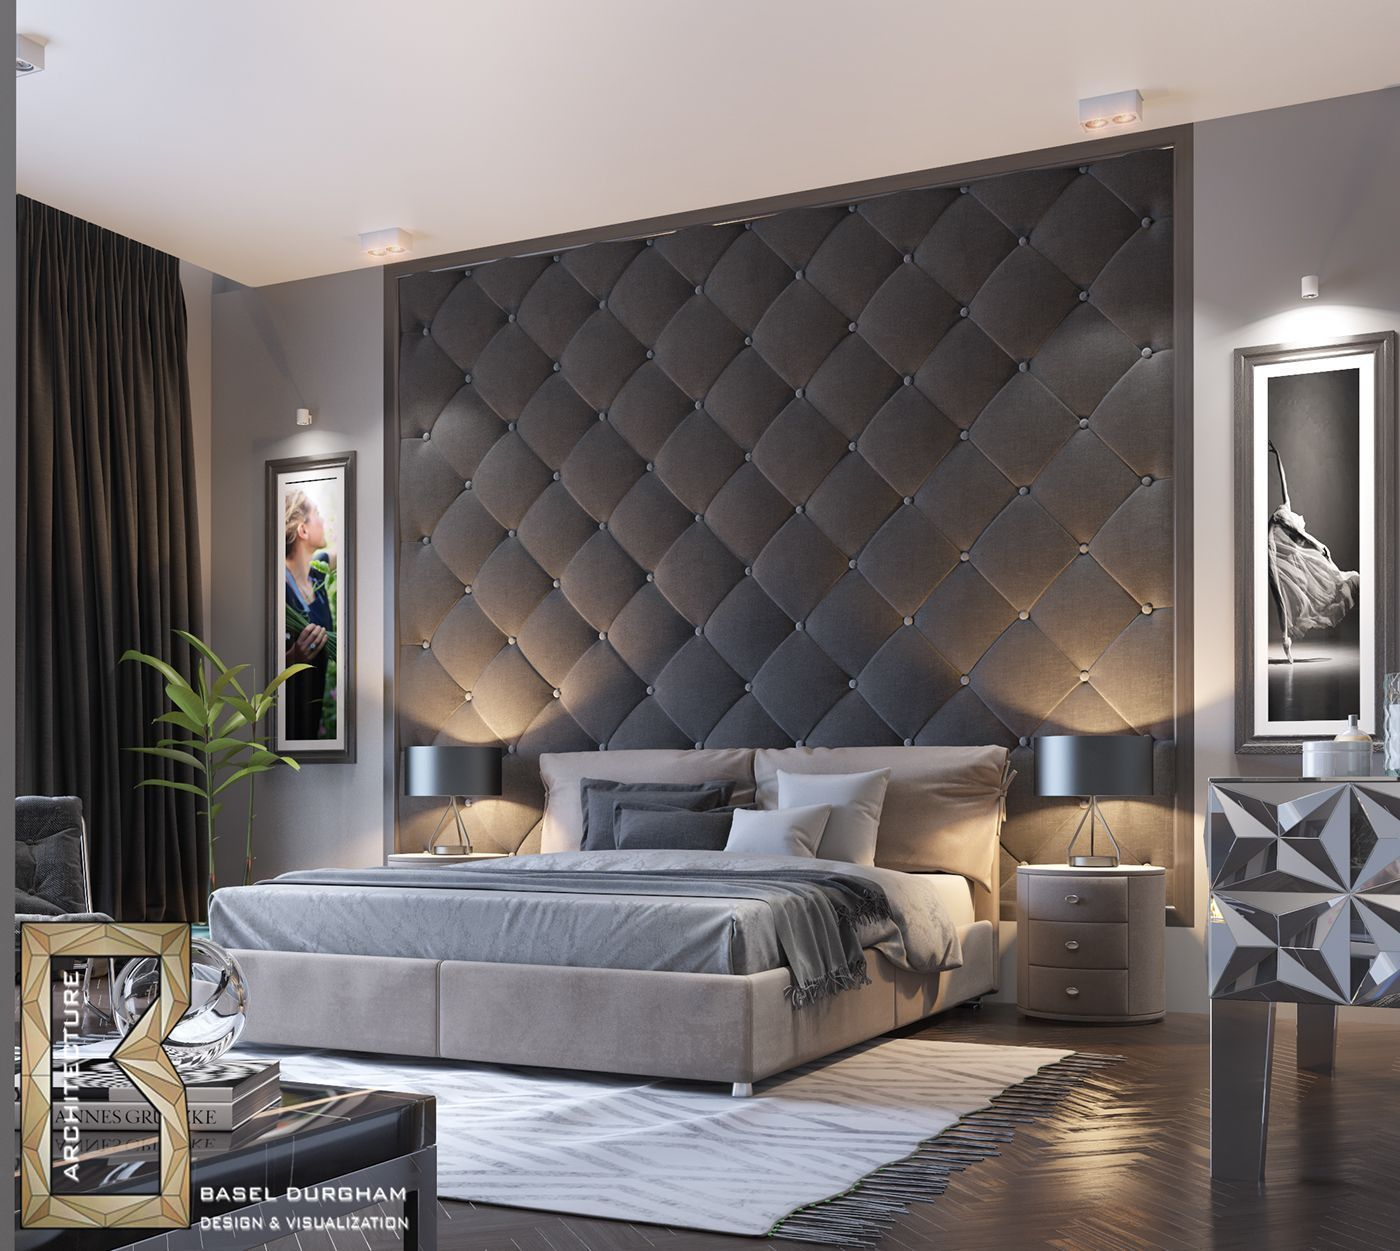 21+ Living room feature wall ideas 2020 ideas